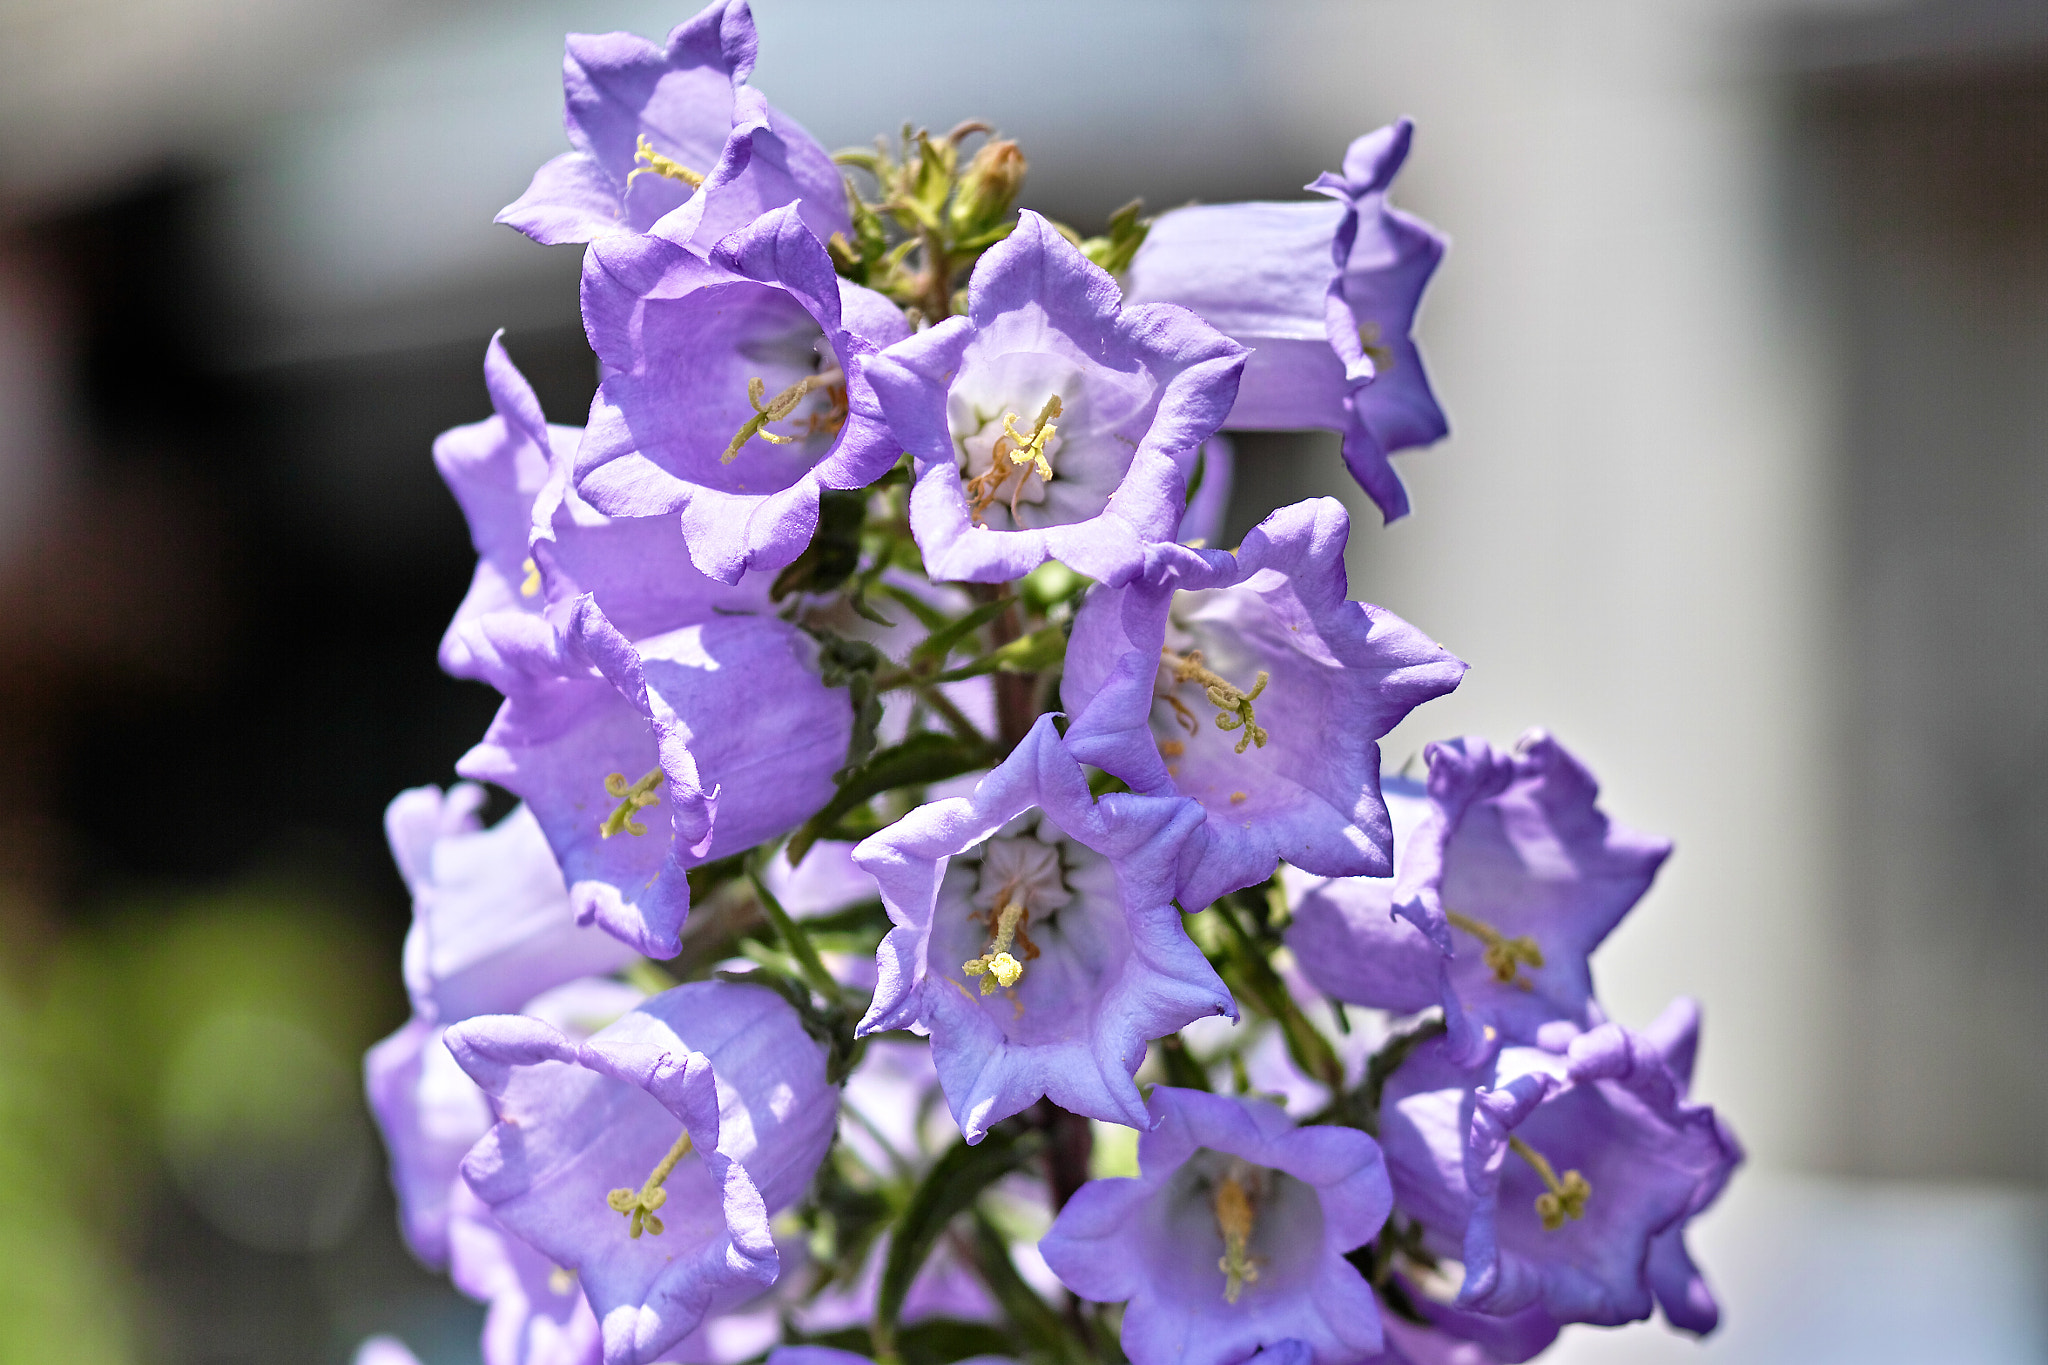 Photograph Campanula by marbee .info on 500px